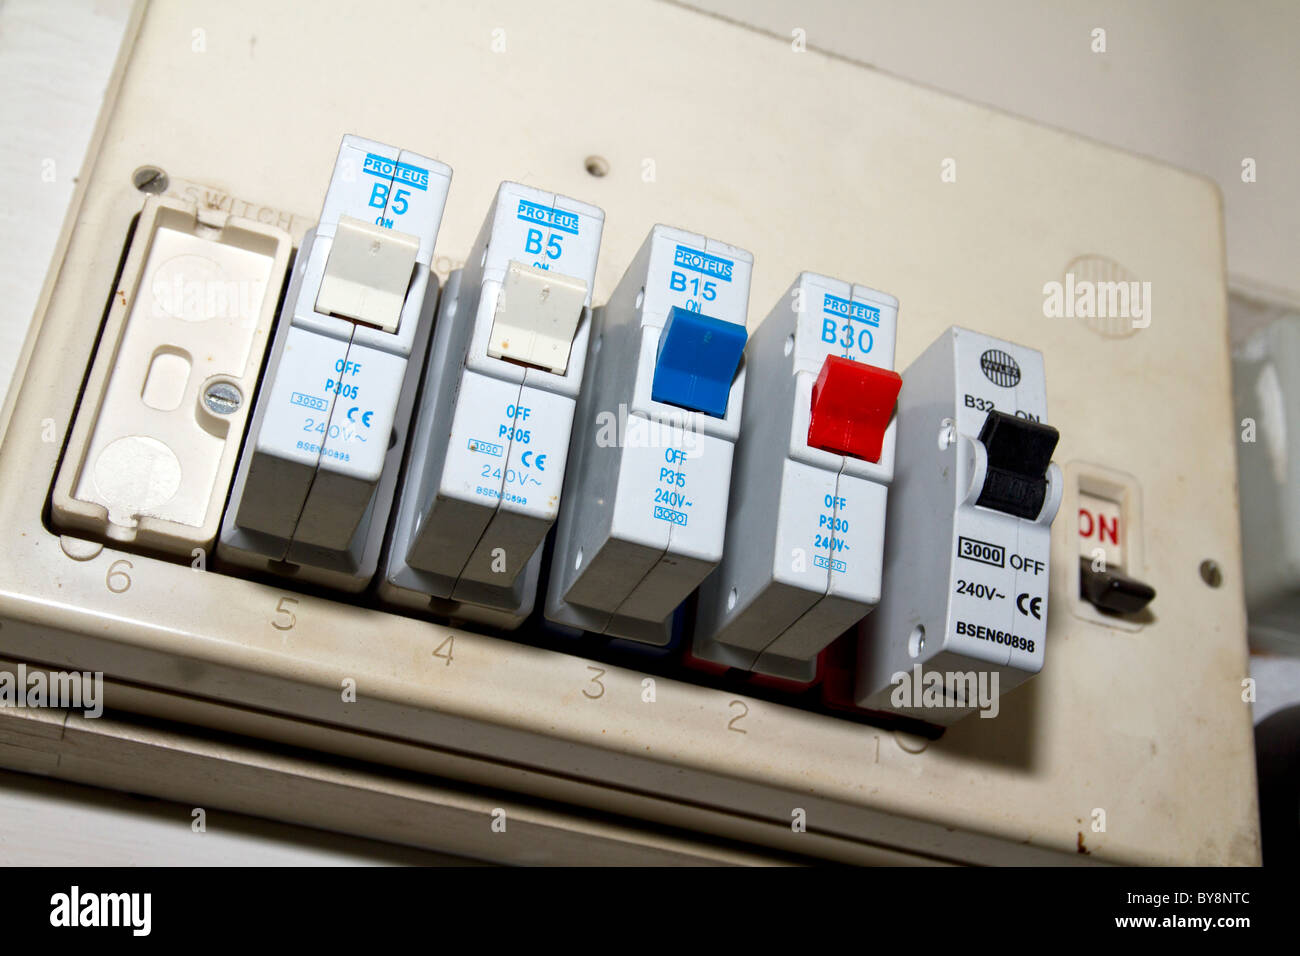 uk old electric fuse box in a london house stock photo 33998844 rh alamy com house fuse box replacement house fuse box repair